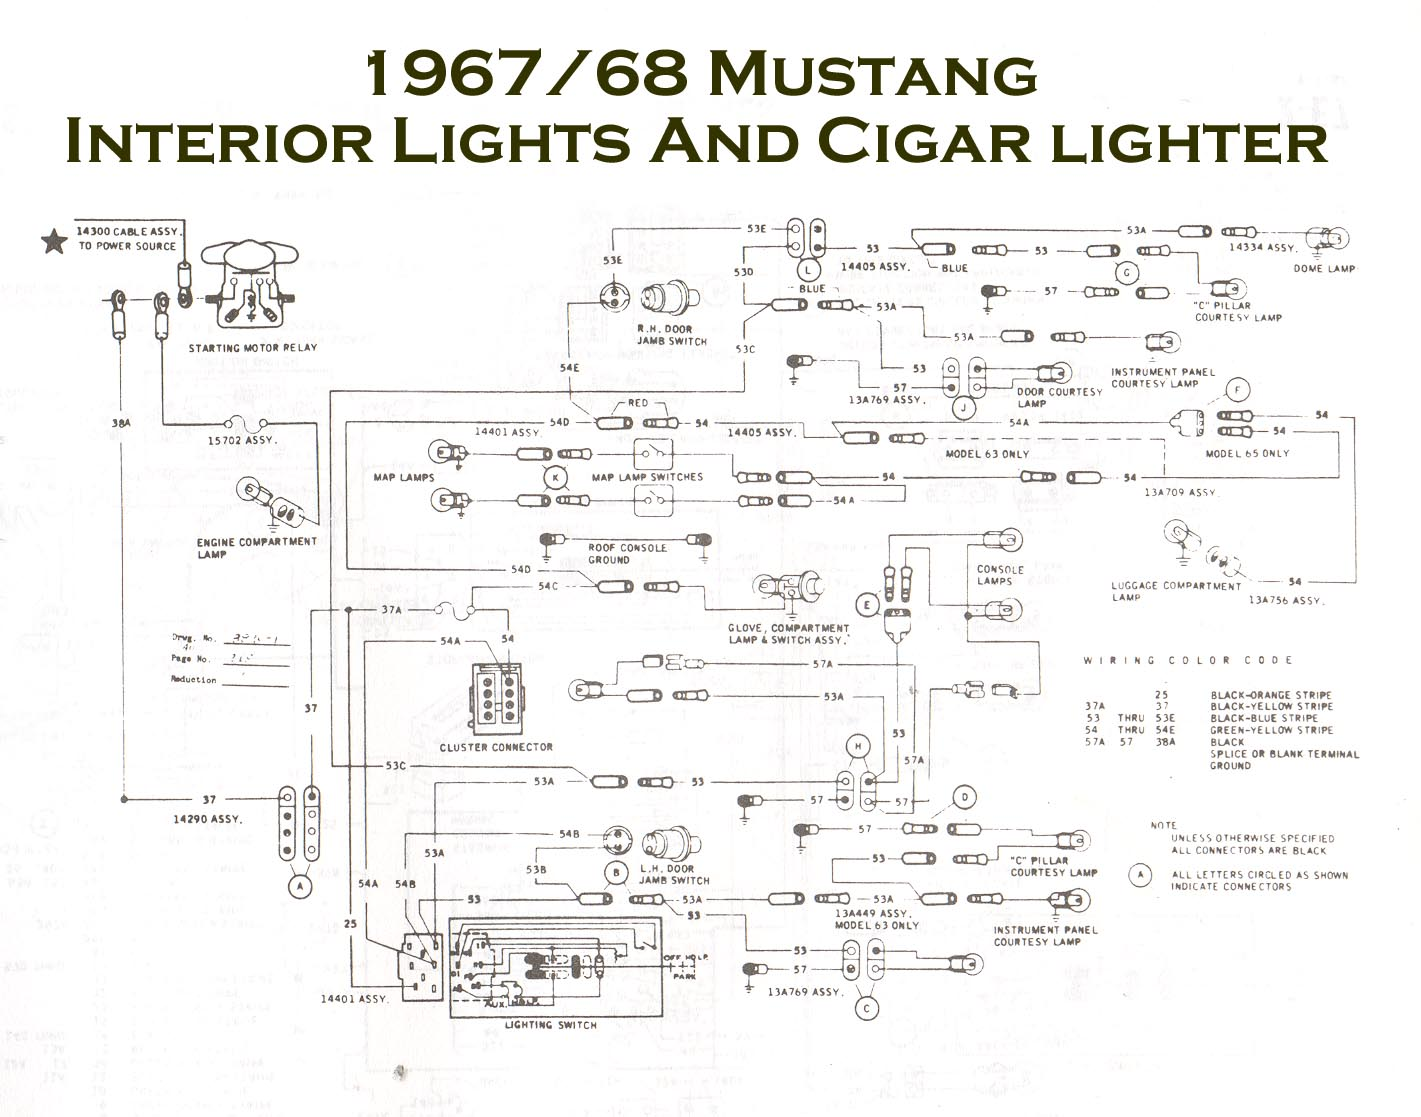 1968 Mustang Tach Wiring Diagram Diagrams Schematic Coil 68 Cougar Fuse Box Name